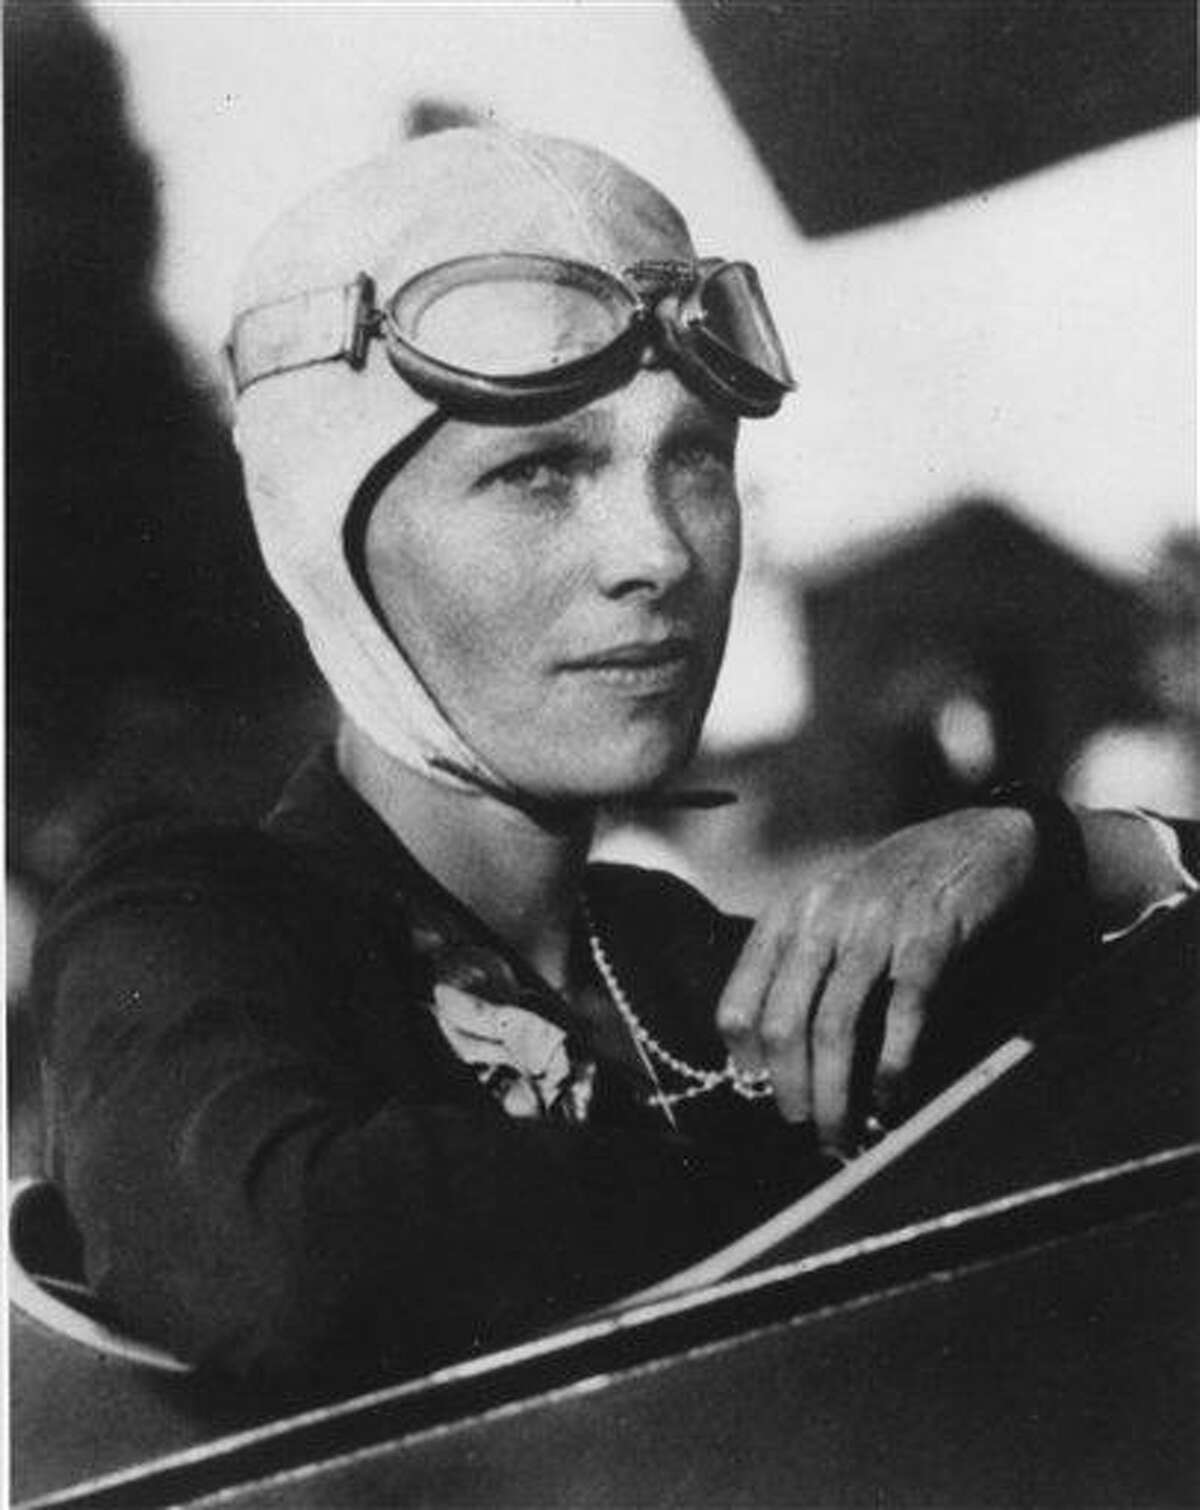 An undated file photo shows Amelia Earhart, the first woman to fly solo across the Atlantic Ocean. Secretary of State Hillary Rodham Clinton is meeting Tuesday with historians and scientists from The International Group for Historic Aircraft Recovery, which will launch a new search in June for the wreckage of Earhart's plane off the remote island of Nikumaroro. Associated Press